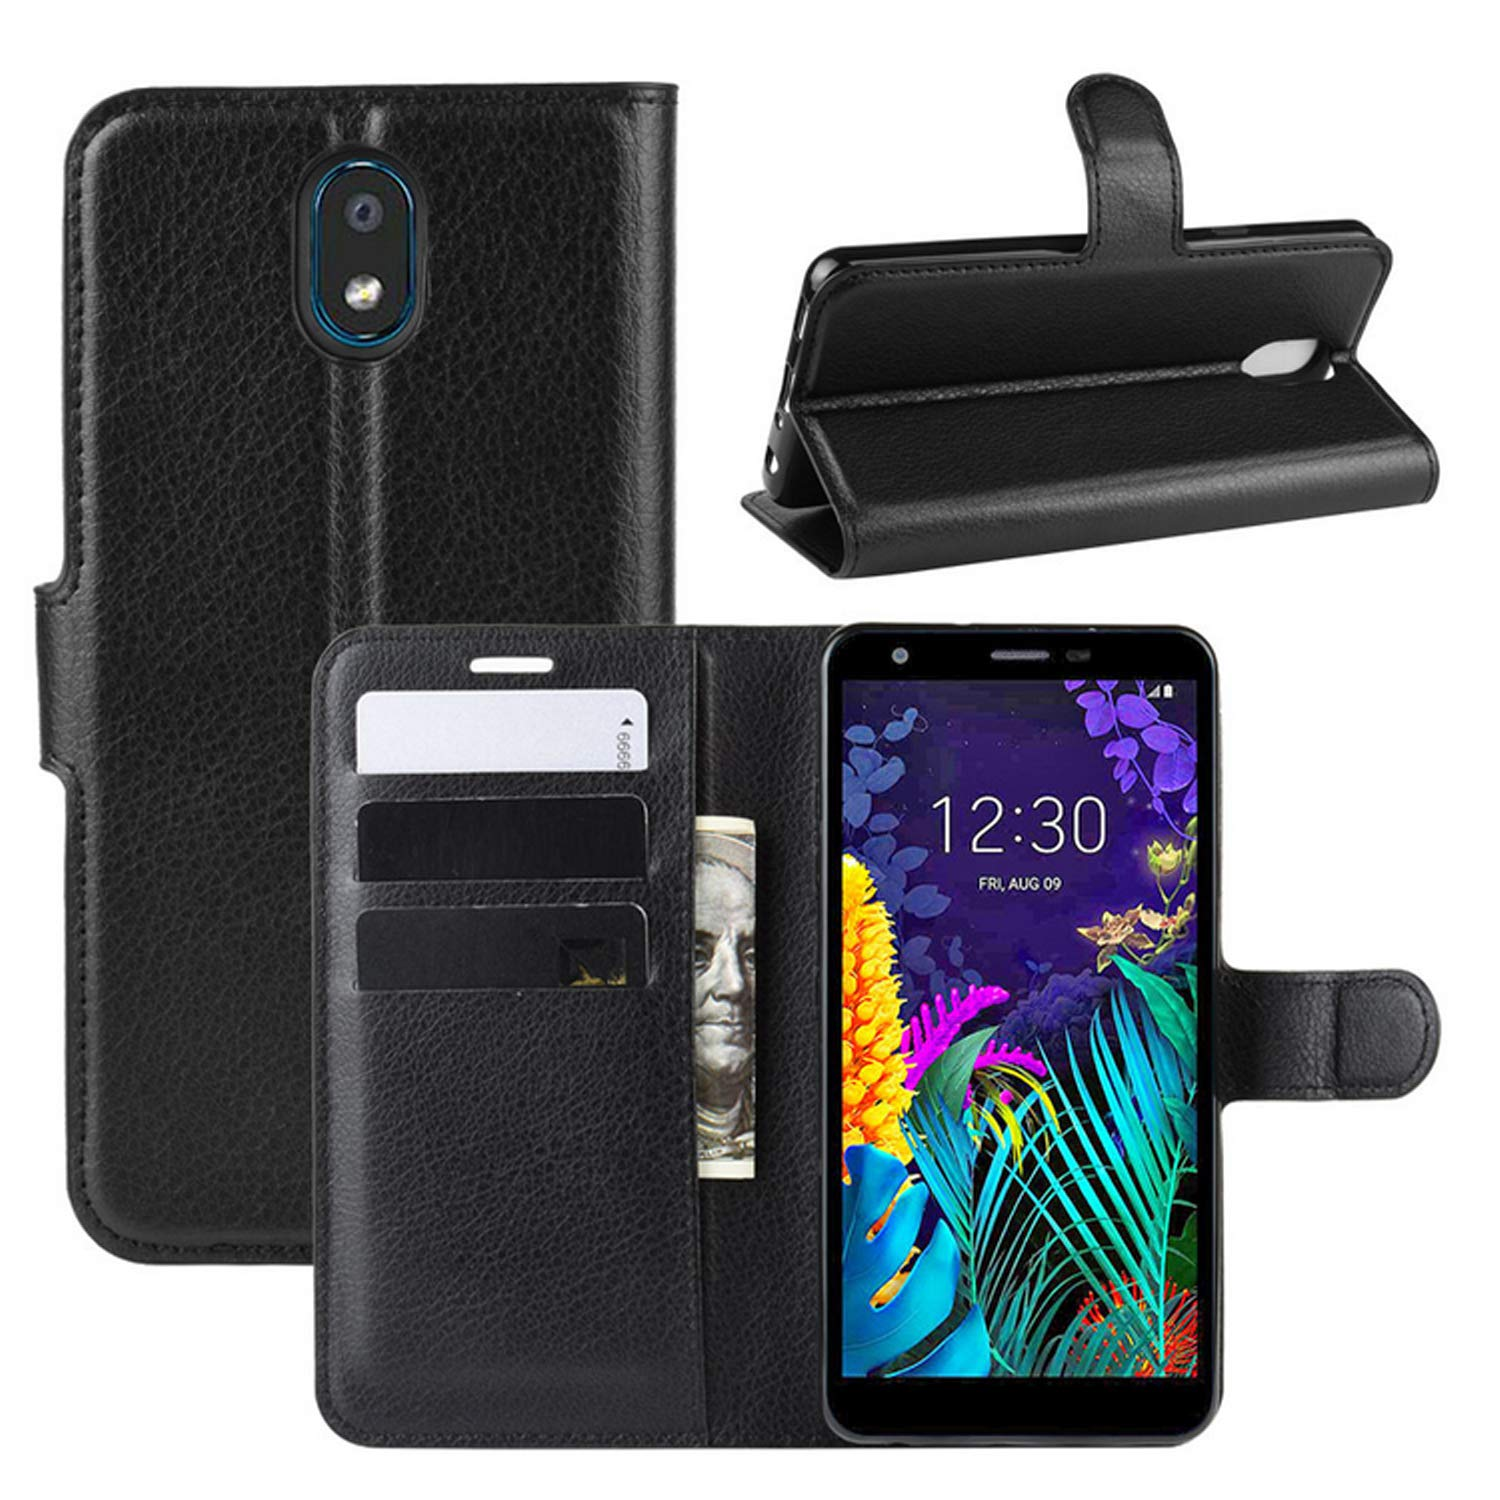 CHICASE LG K30 (2019)Case,LG Escape Plus/LG Arena 2/LG Journey LTE/LG Tribute Royal/LG X2 2019 Phone Case,PU Leather Wallet Flip Folio Cover with Kickstand Card Holders Magnetic Closure(Black)